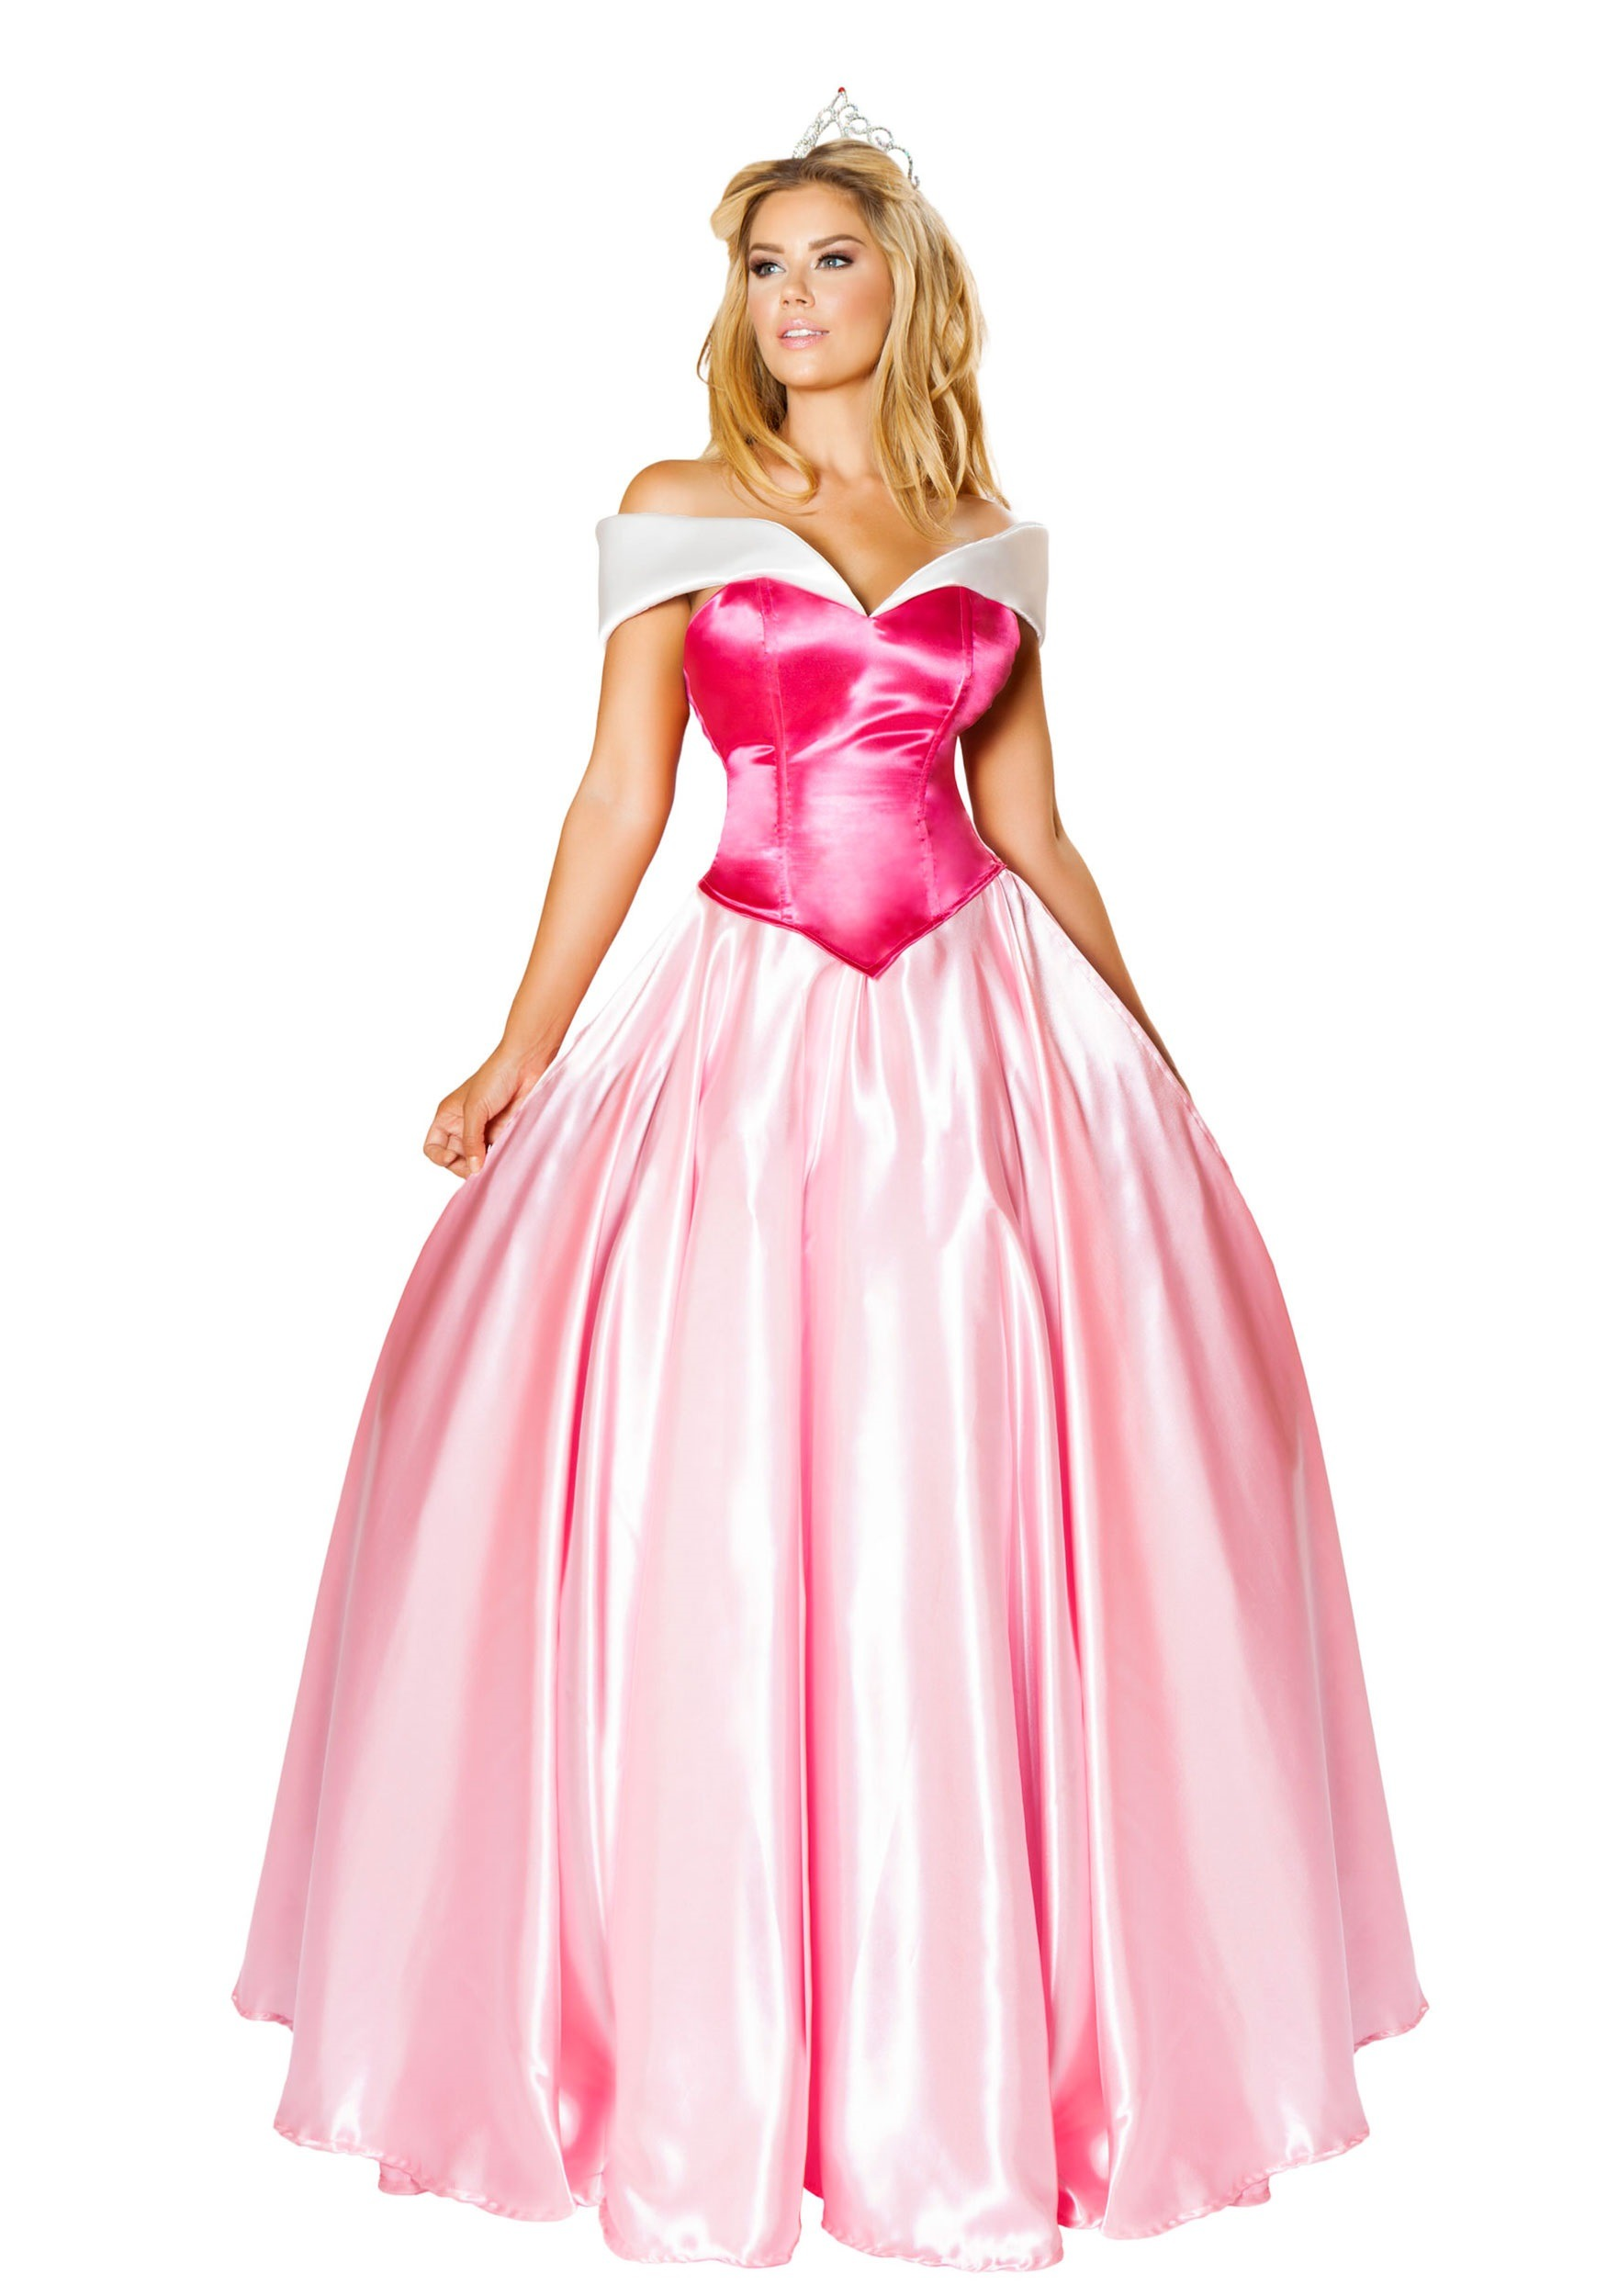 Https Www Halloweencostumes Com Women S Beautiful Princess Dress Html